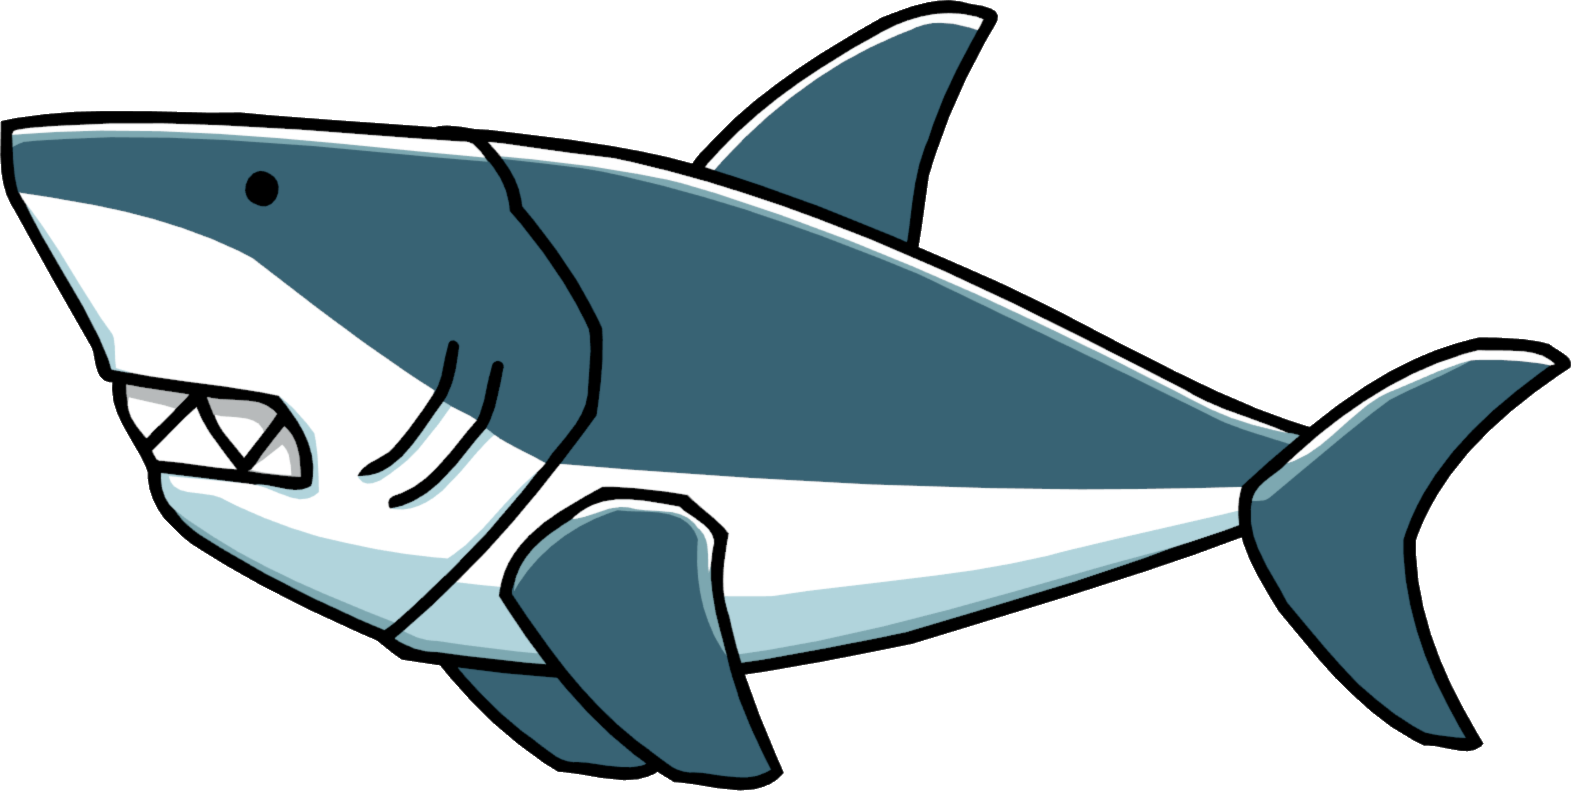 Tooth at getdrawings com. Clipart shark mean